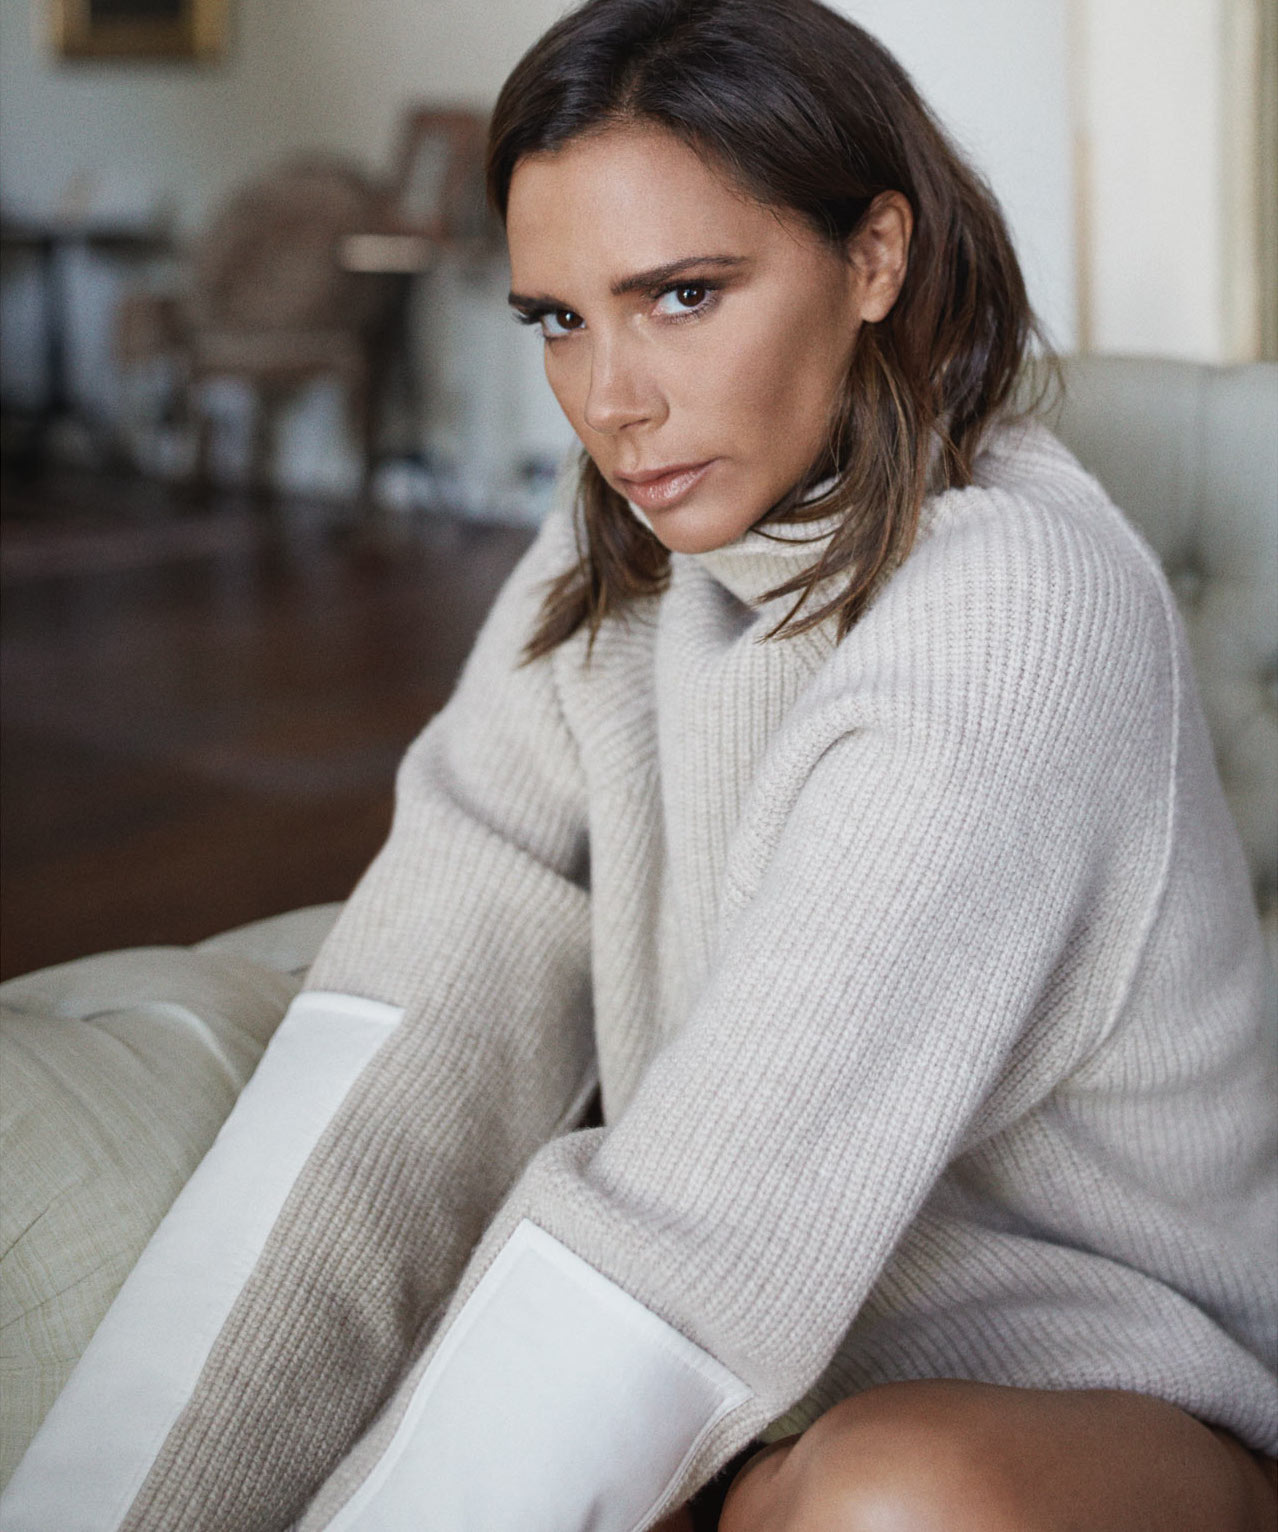 Smile: Victoria Beckham in The Edit Magazine October 6th ...